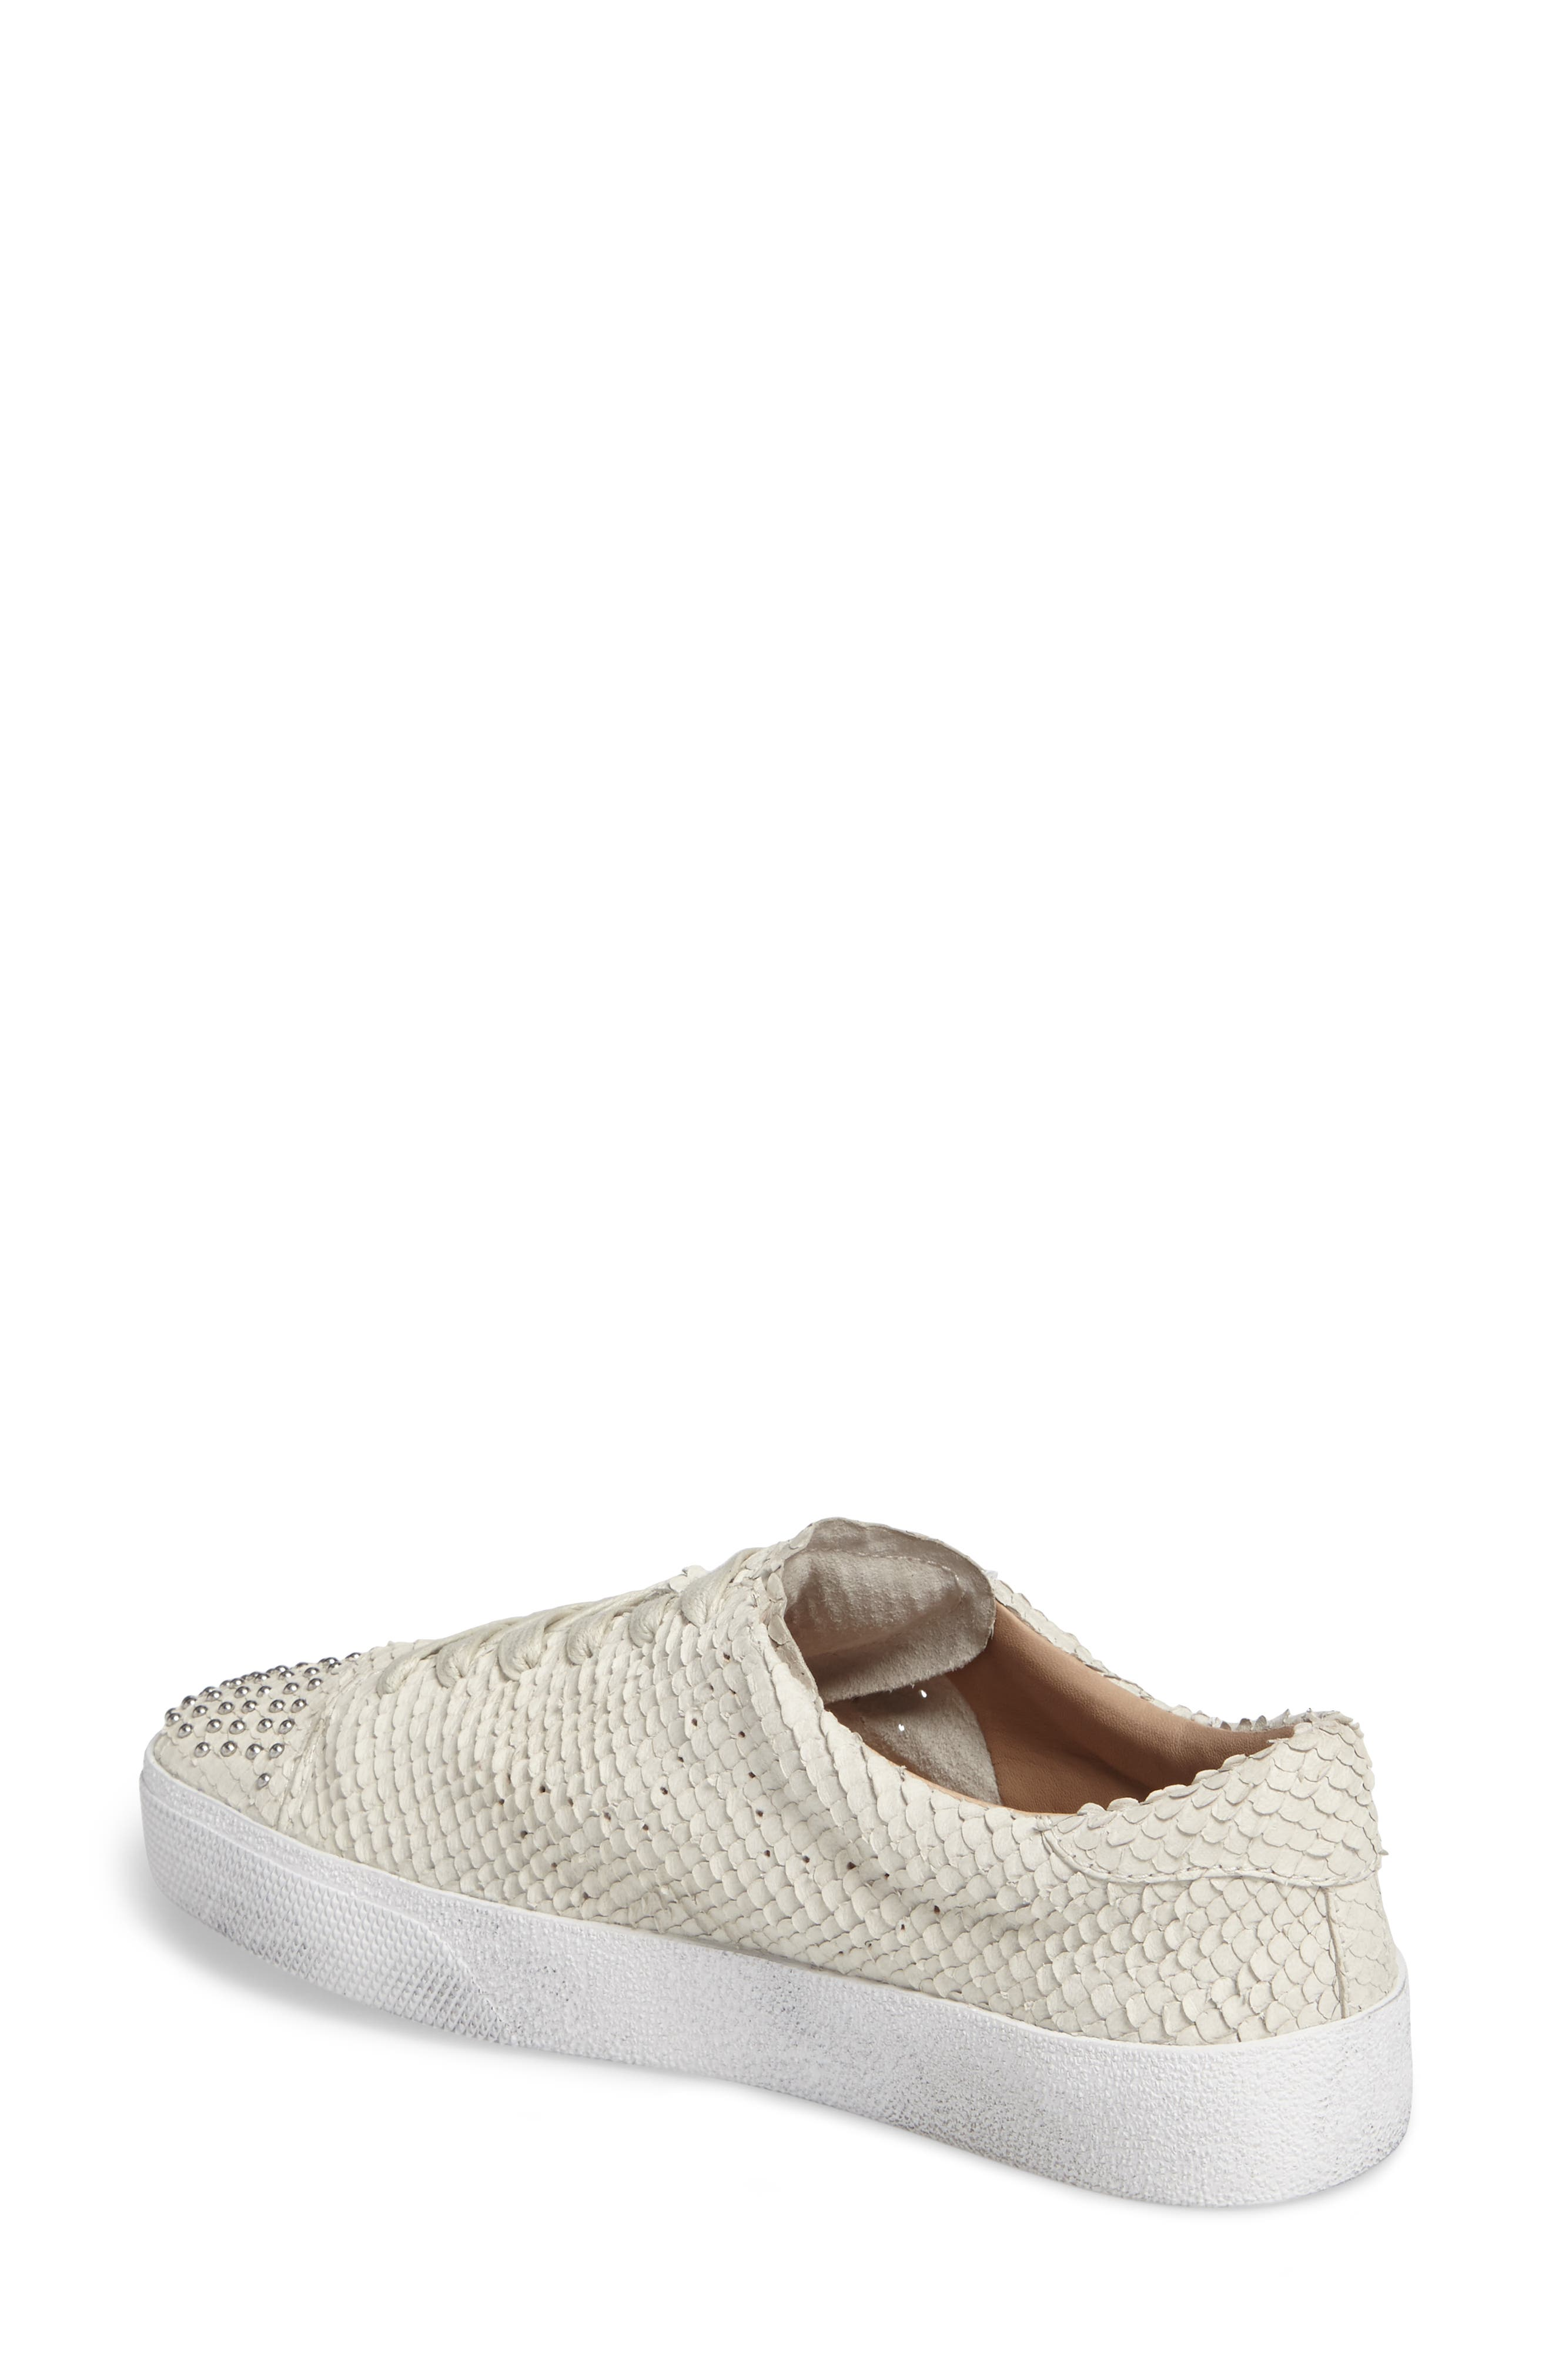 Catcall Studded Sneaker,                             Alternate thumbnail 2, color,                             Vodka/ Silver